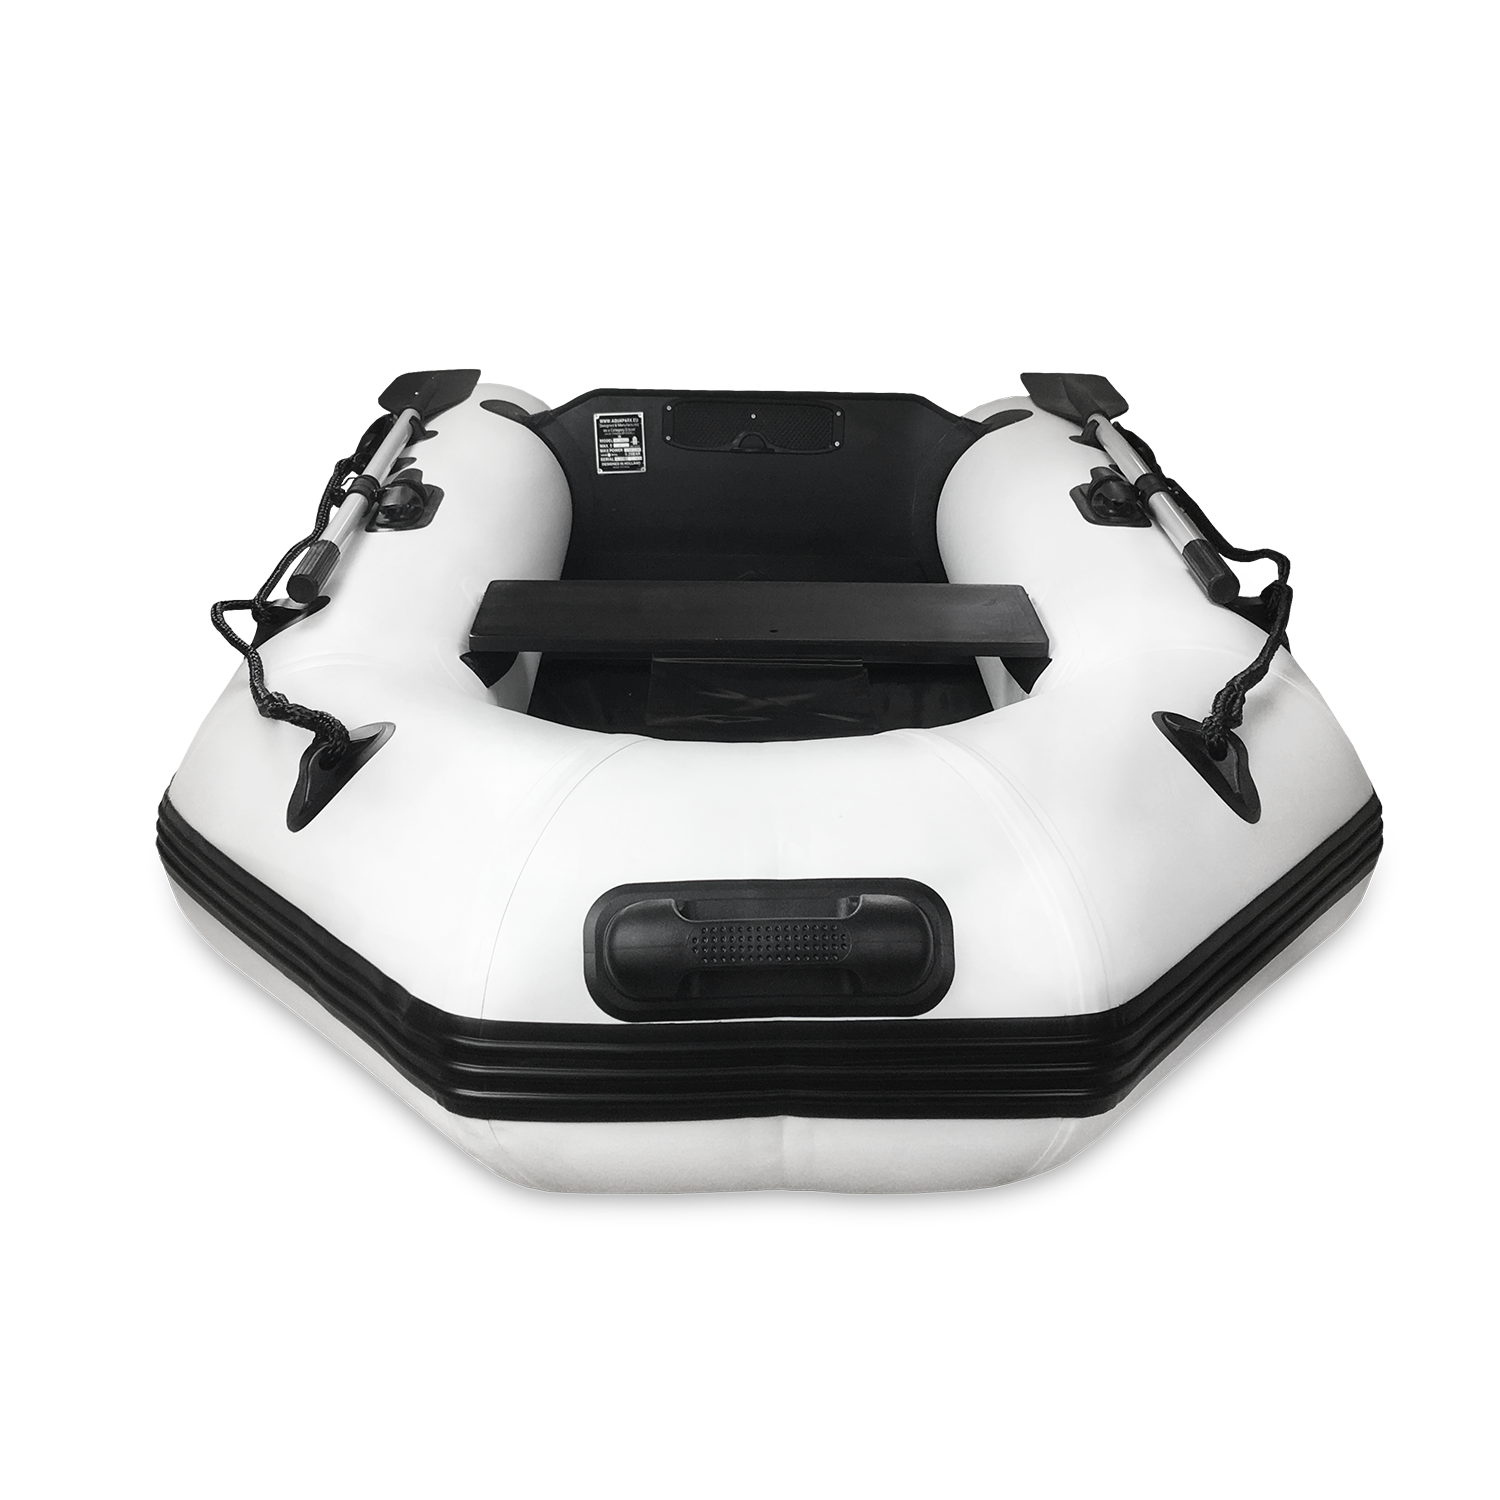 230Pro Inflatable Dinghy - White